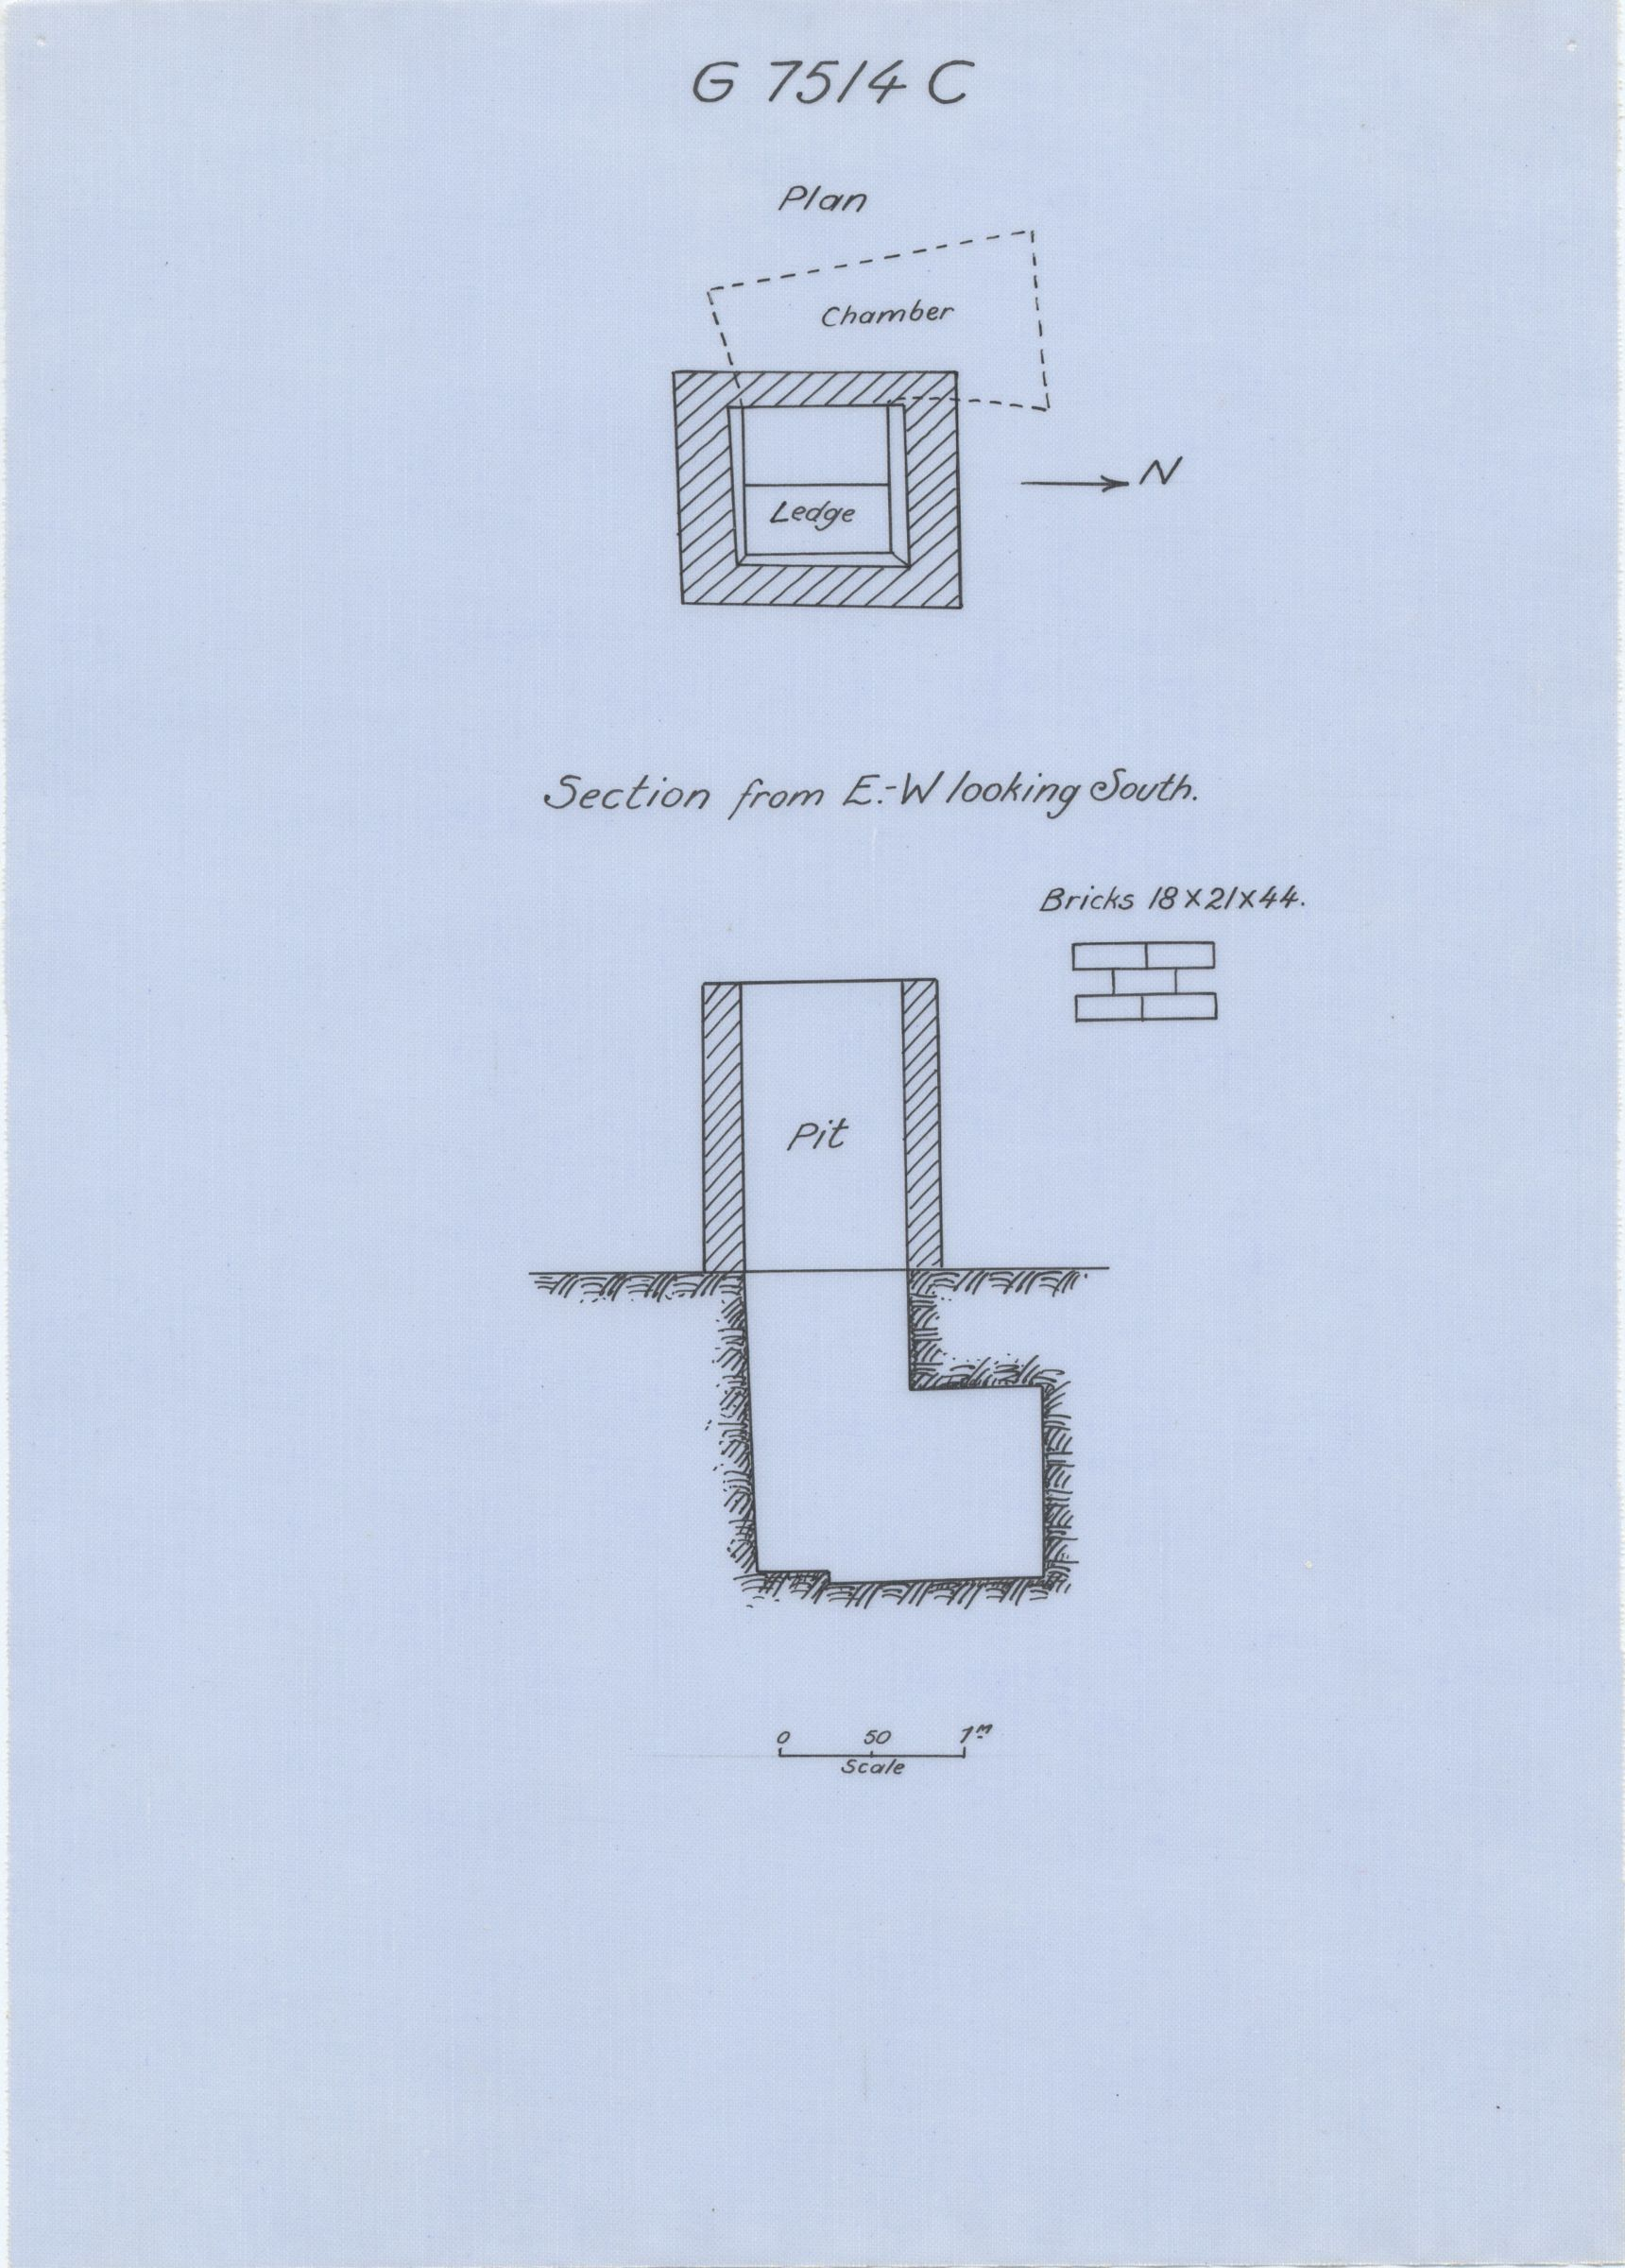 Maps and plans: G 7514, Shaft C